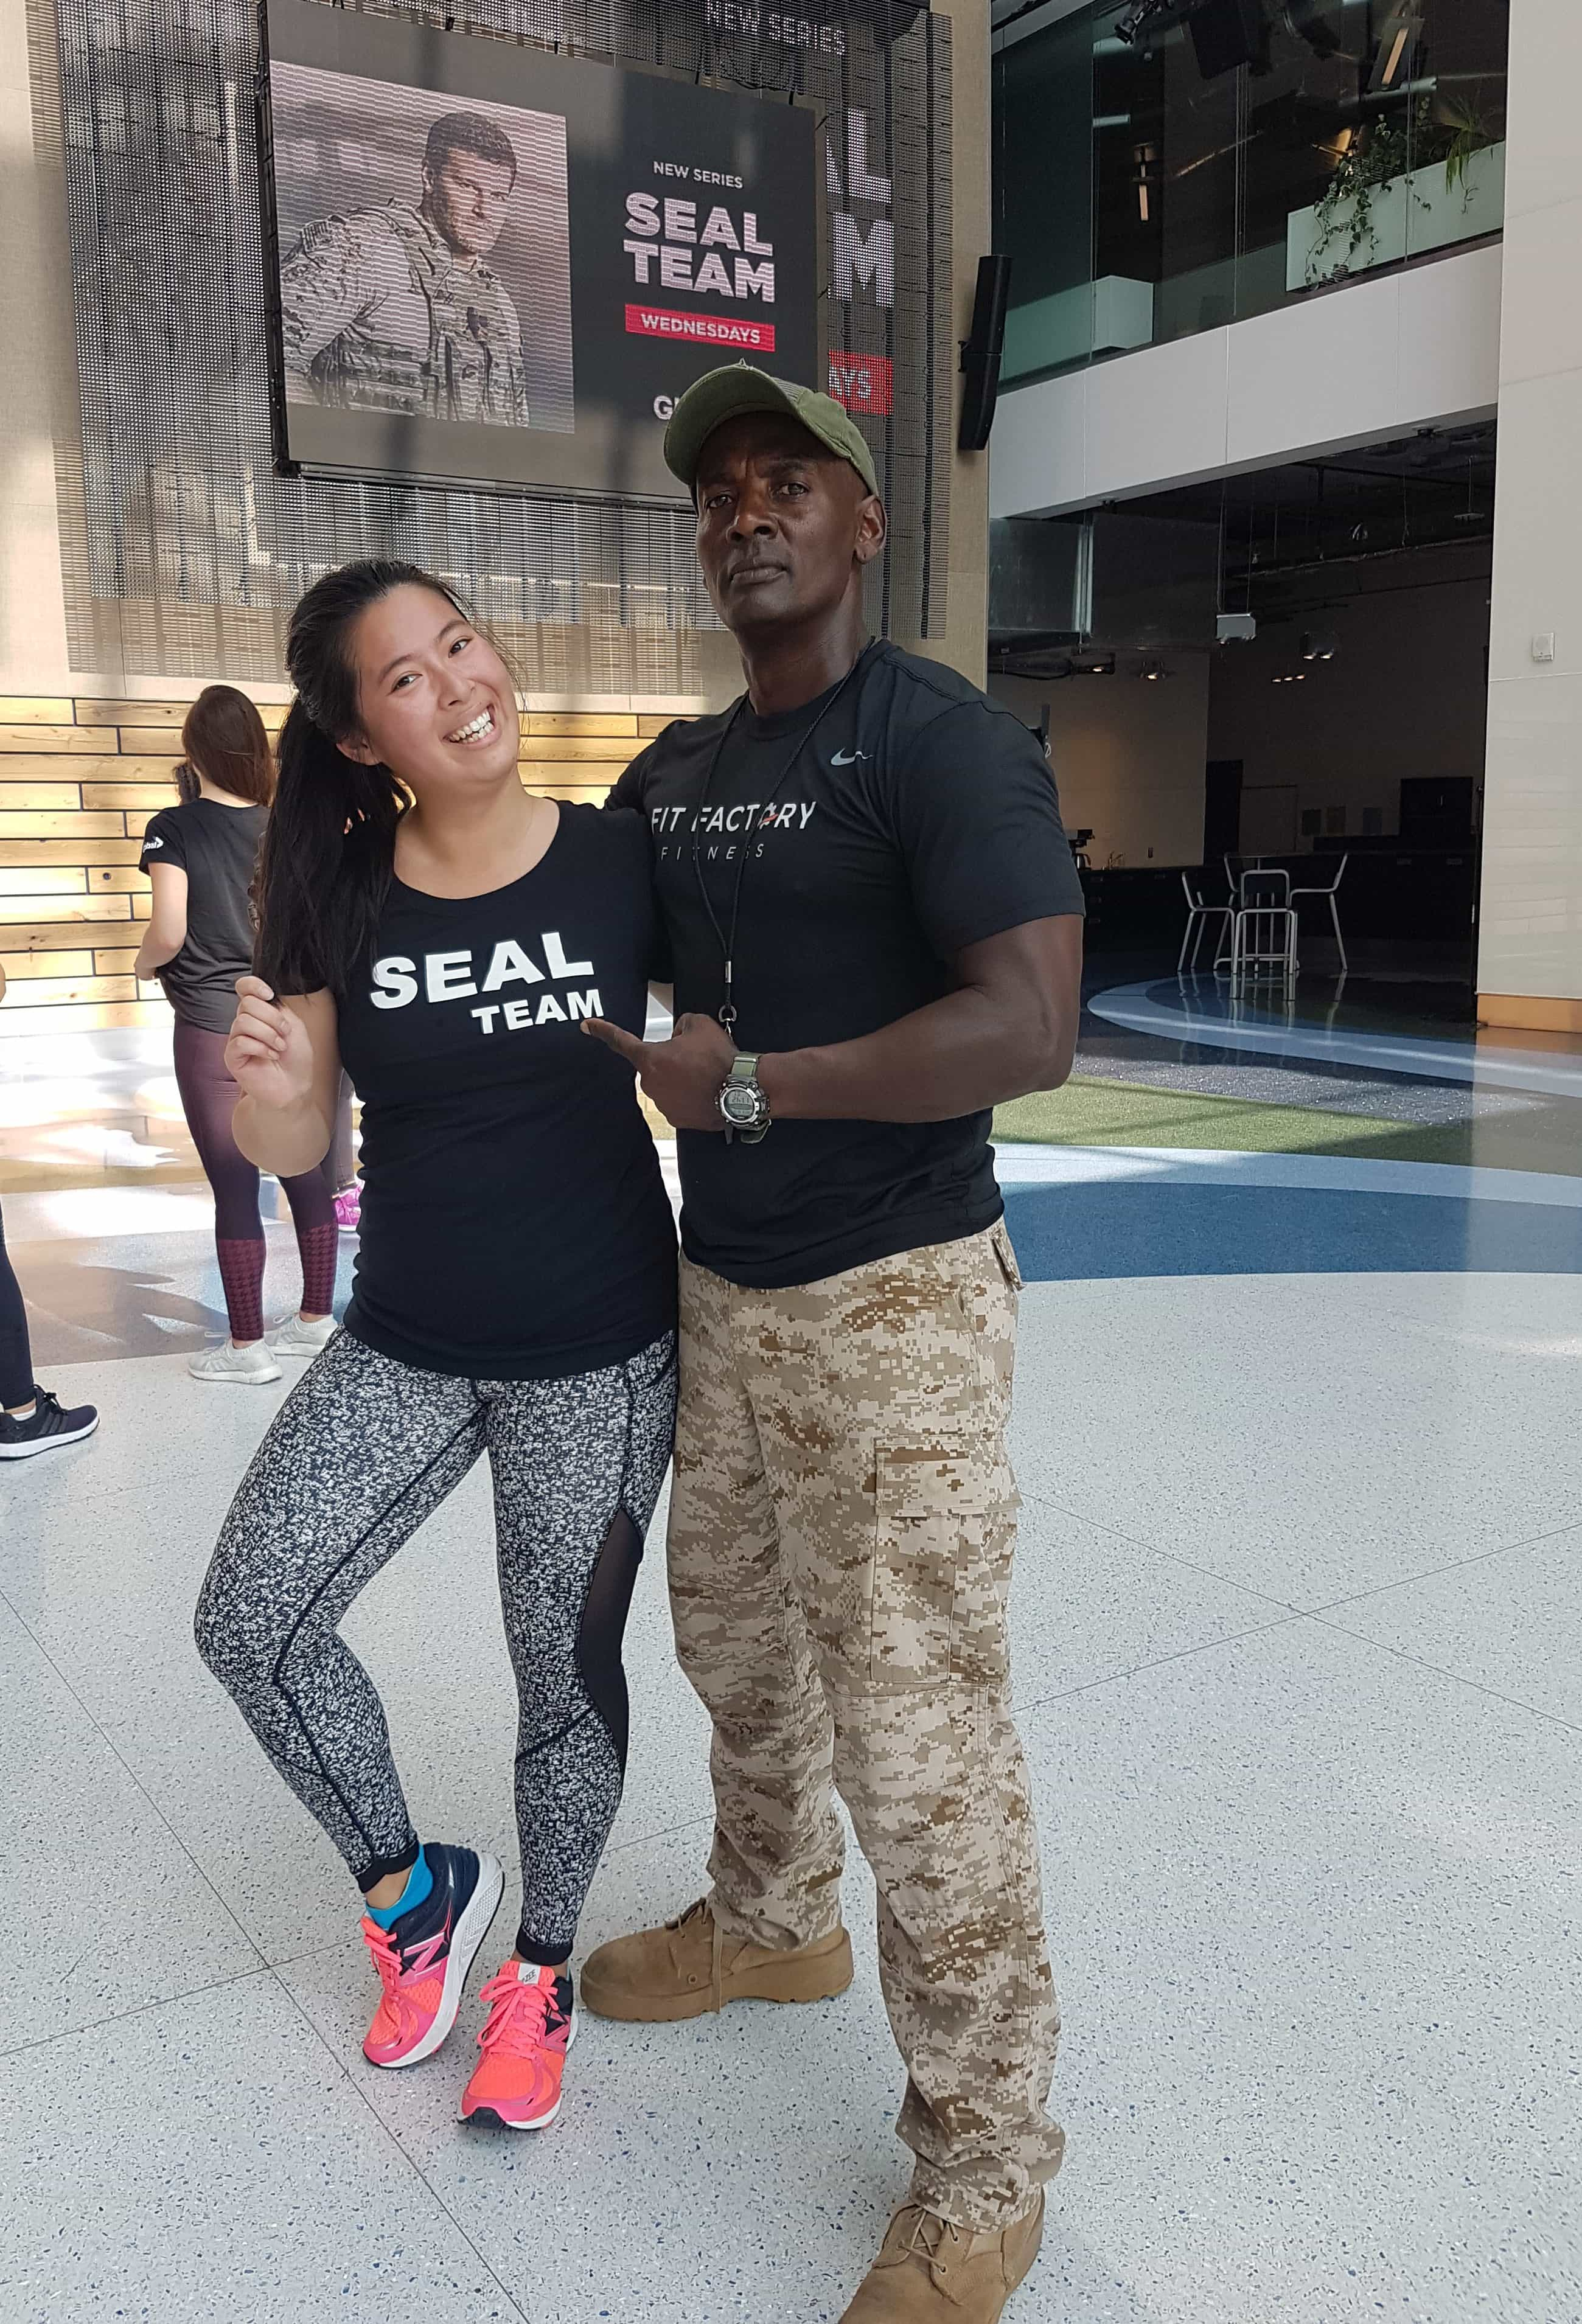 The Brave, SWAT, and Seal Team GlobalTV FitFactoryTO